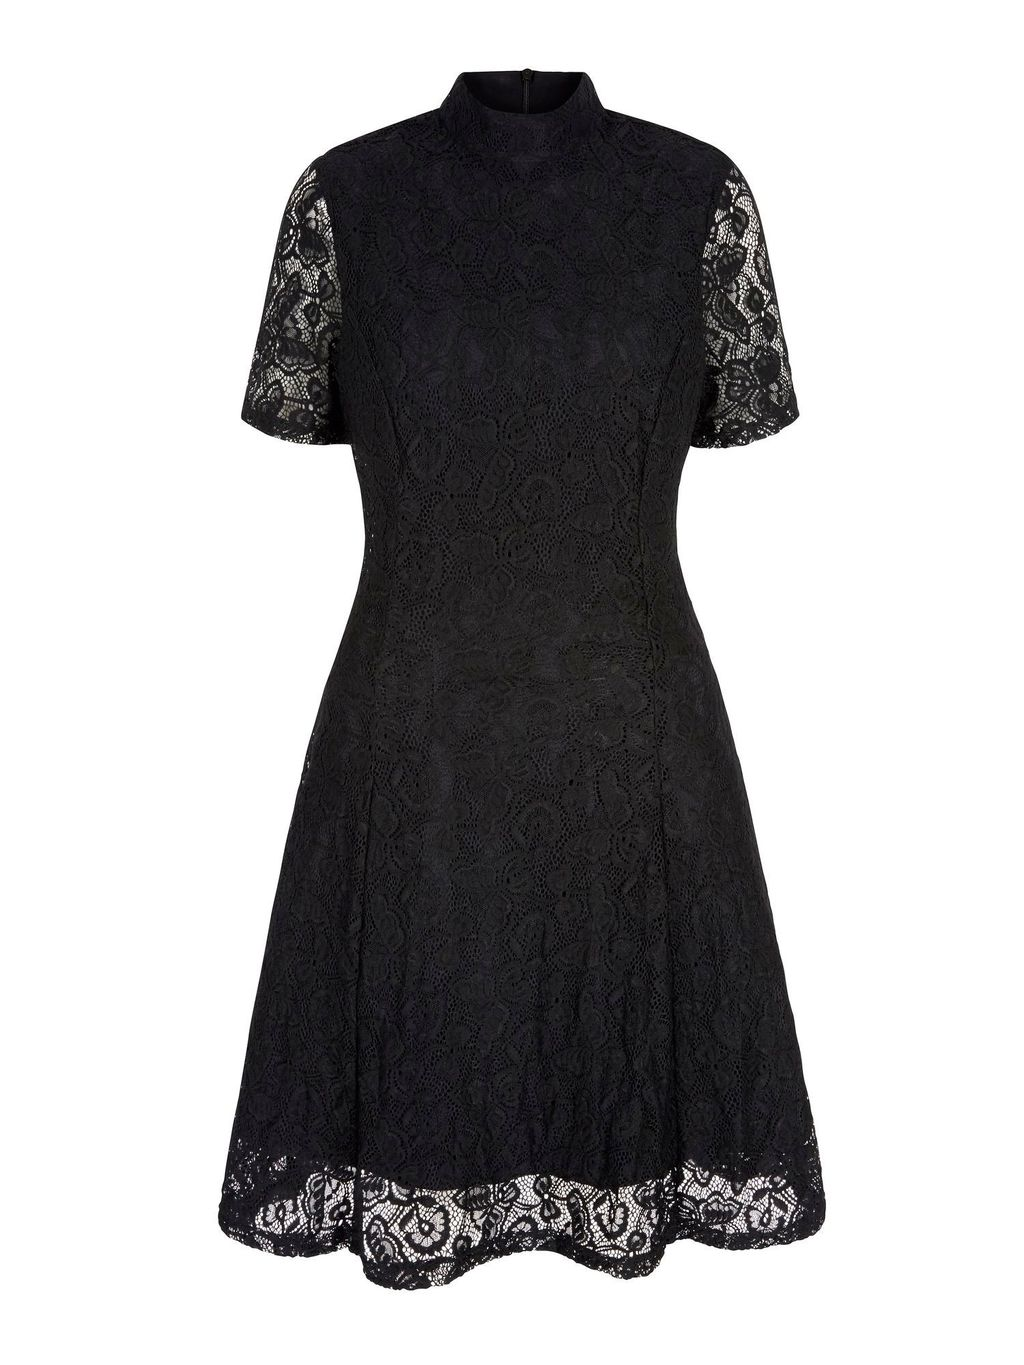 Floral Print Lace High Neck Dress, Black - pattern: plain; neckline: high neck; predominant colour: black; occasions: evening; length: on the knee; fit: fitted at waist & bust; style: fit & flare; fibres: polyester/polyamide - stretch; sleeve length: short sleeve; sleeve style: standard; texture group: lace; pattern type: fabric; season: a/w 2015; wardrobe: event